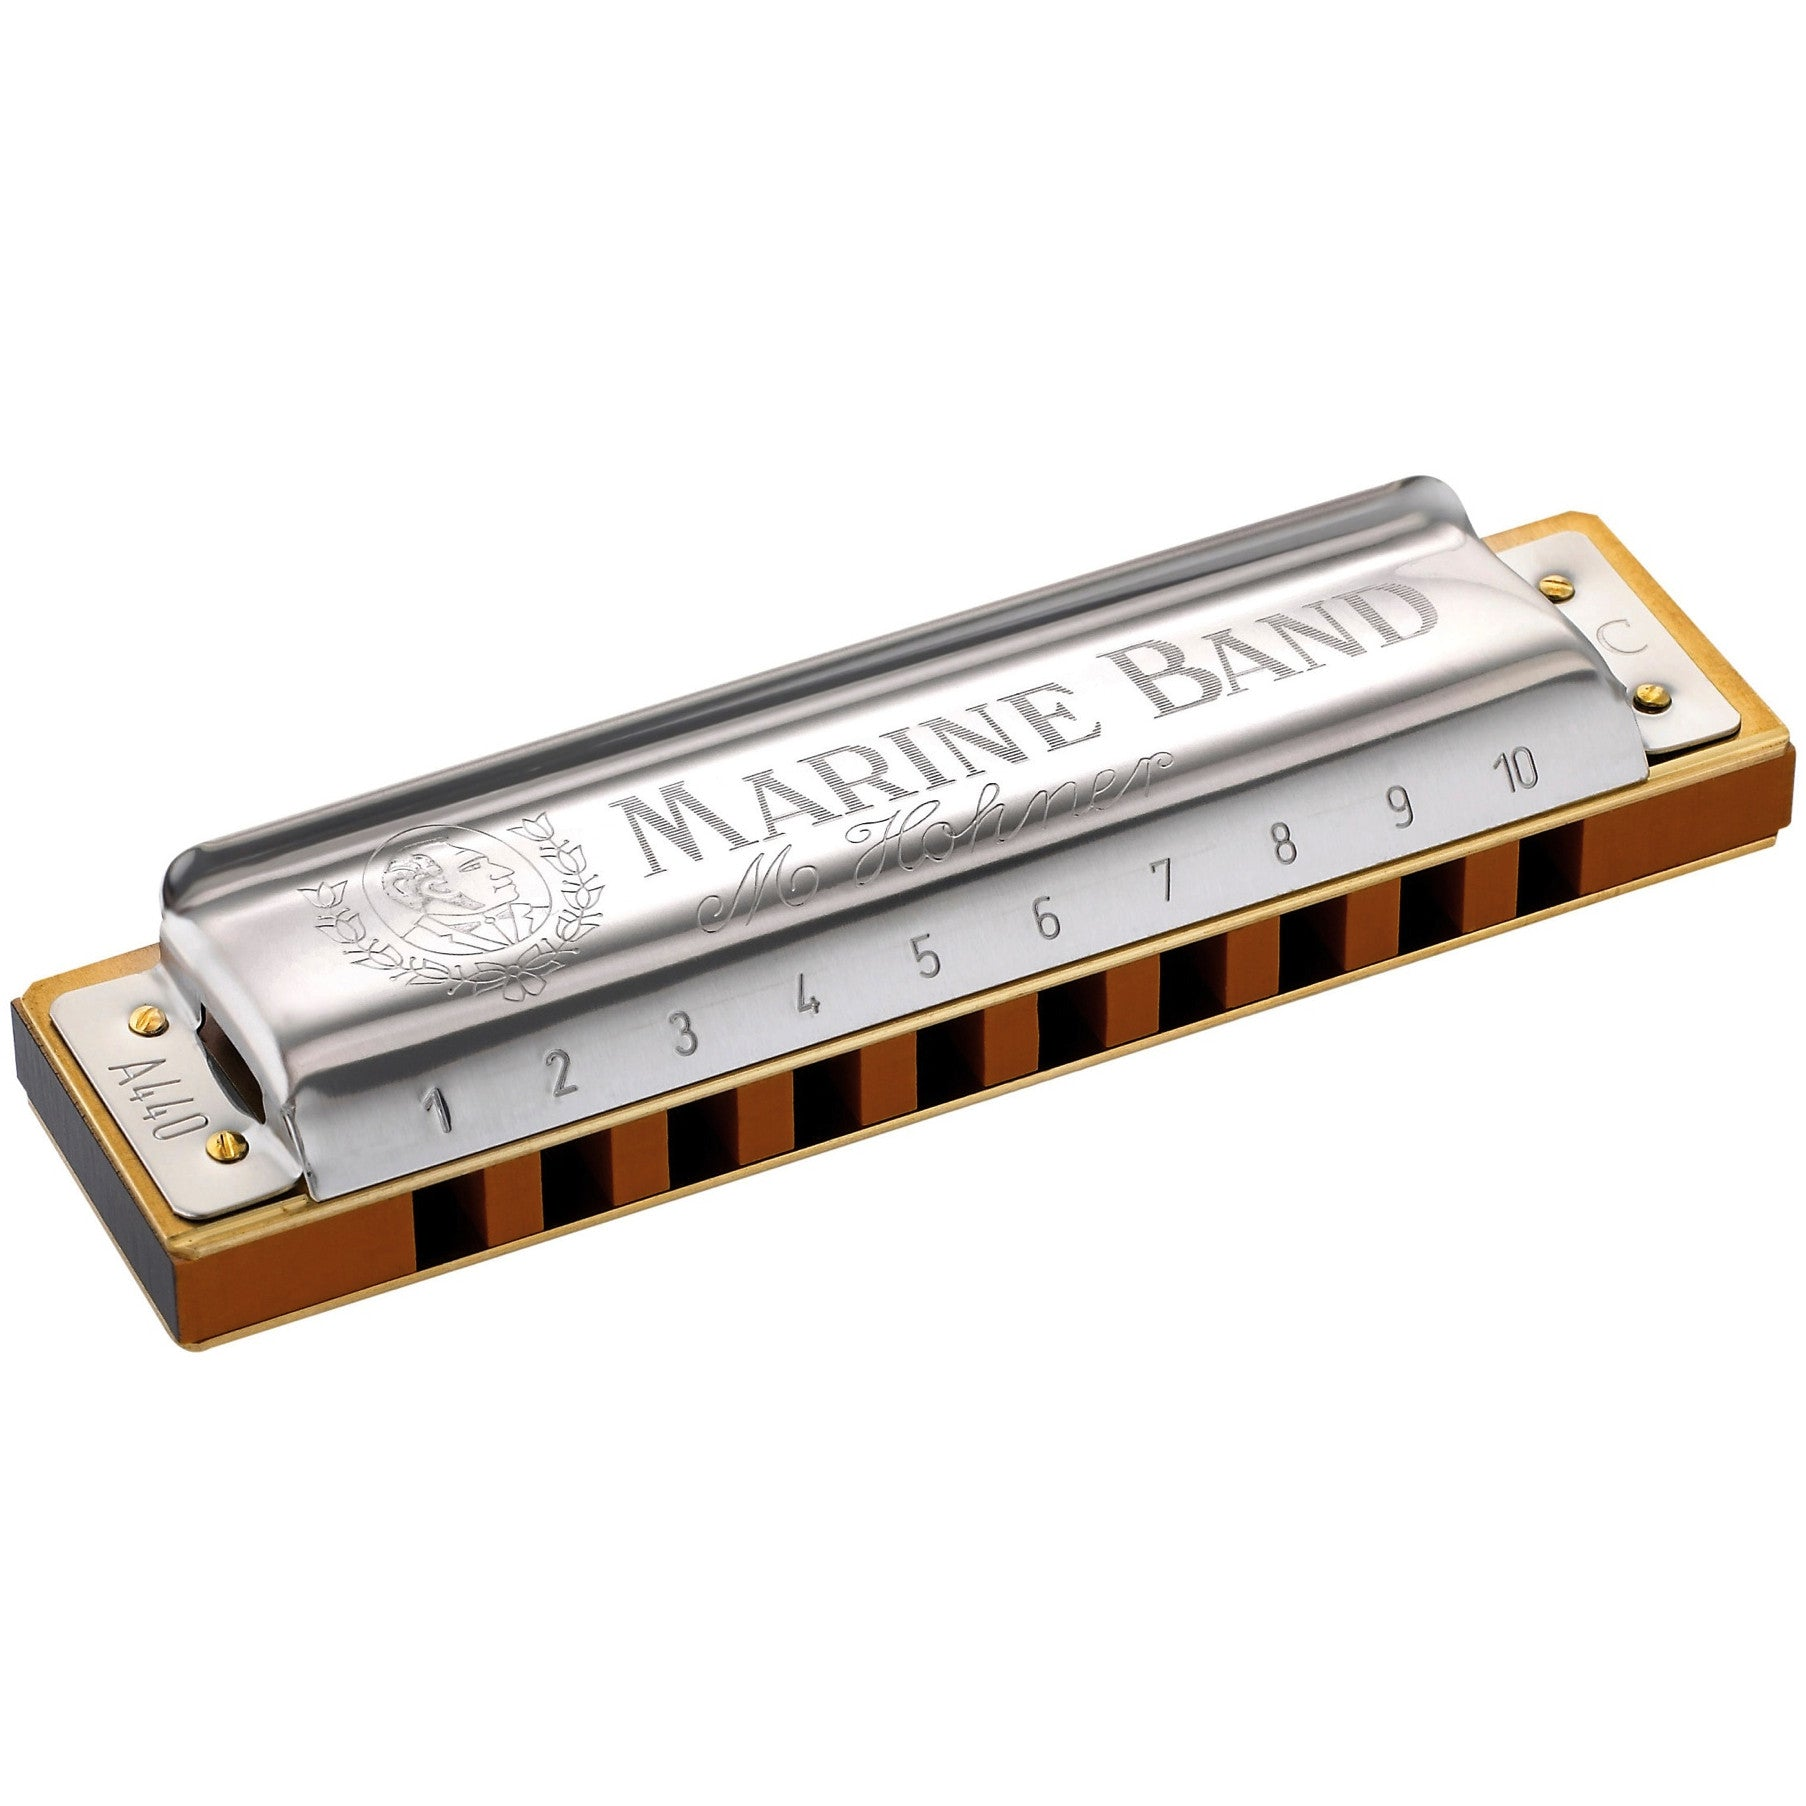 Hohner 1896 Marine Band Harmonica Key of G